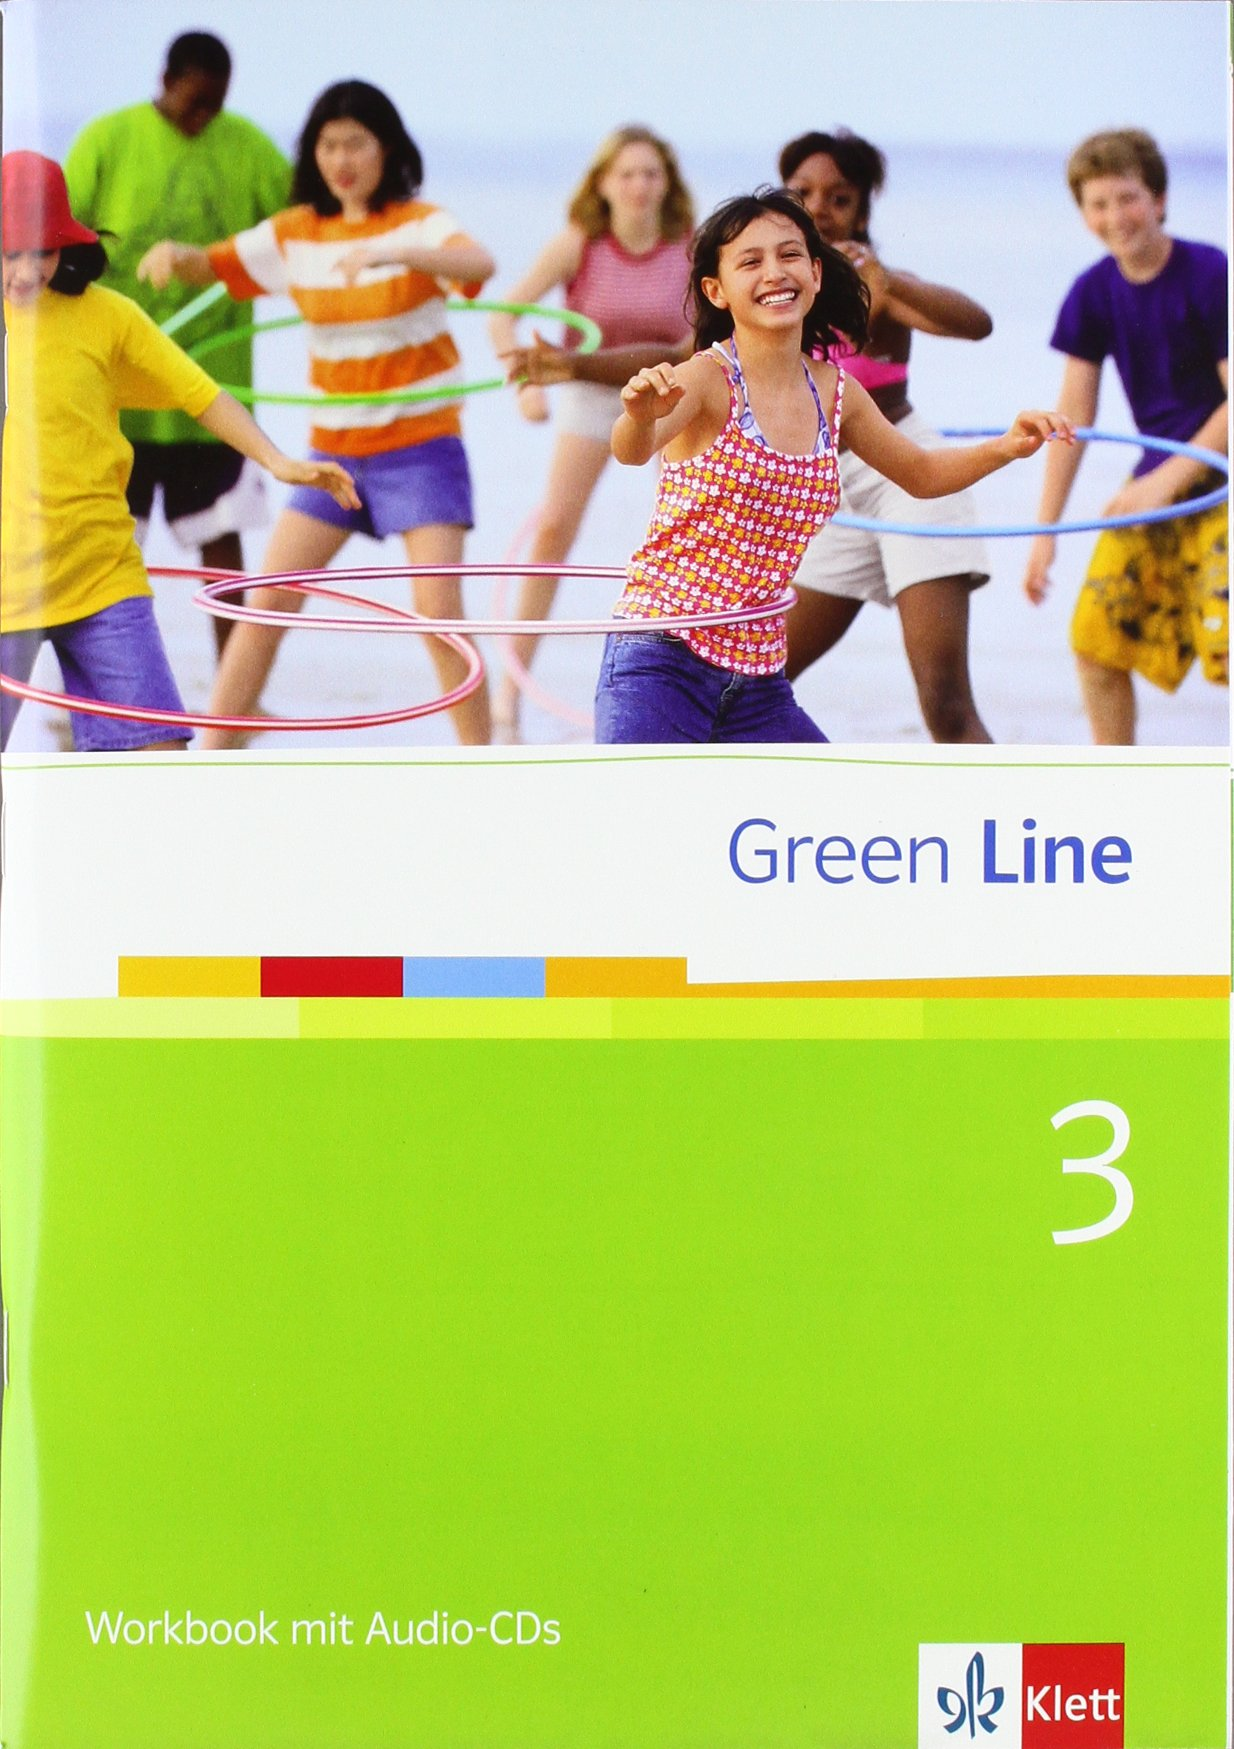 Green Line 3. Workbook mit Audio-CDs. 7. Klasse